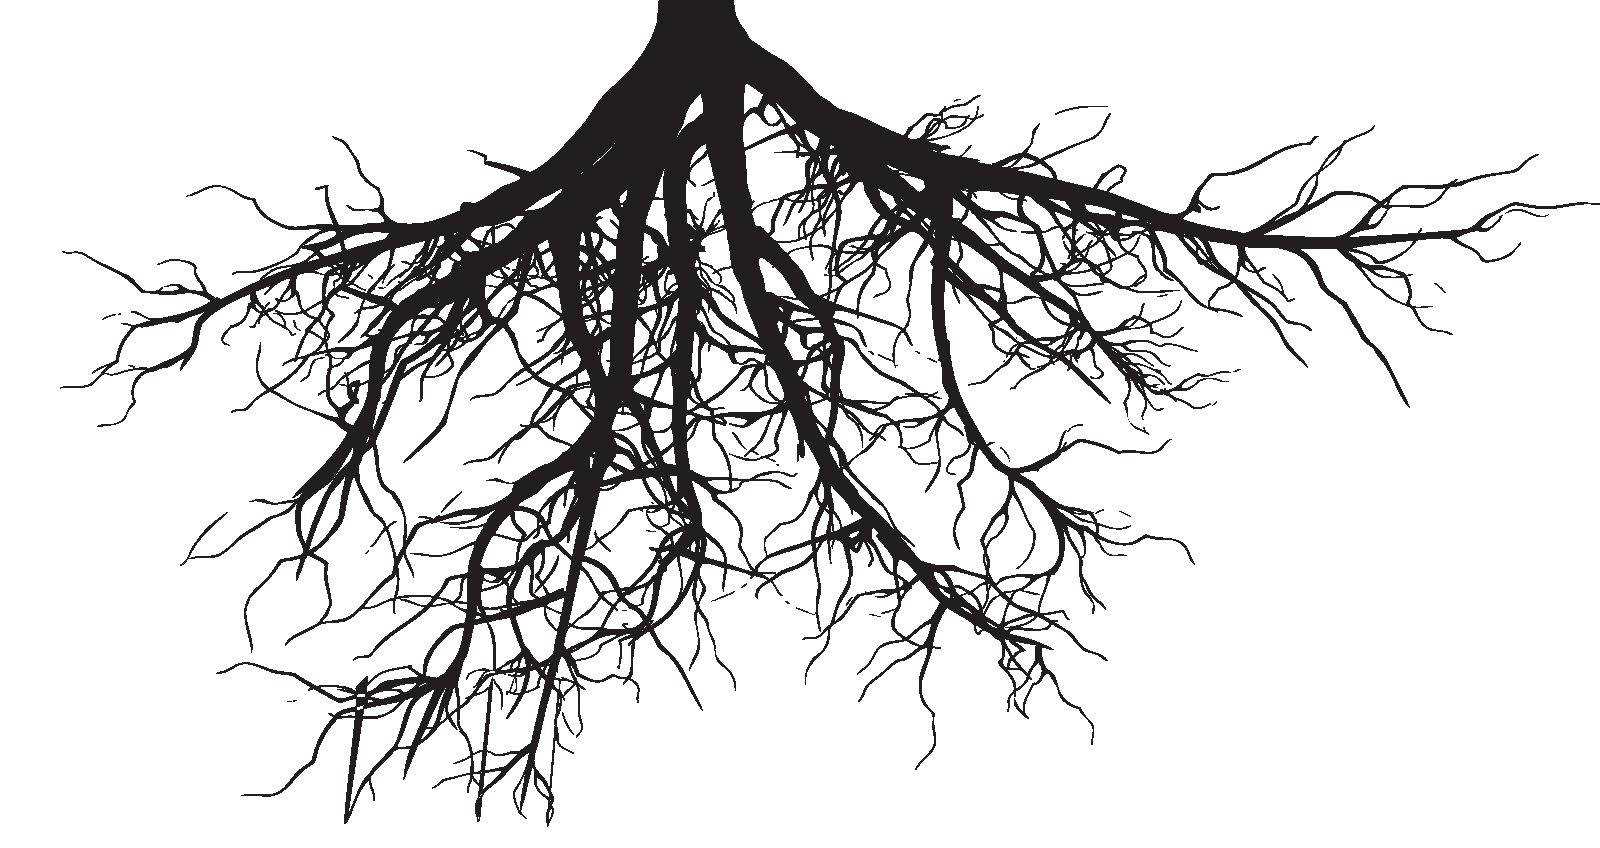 graphic royalty free library roots transparent background #102412255